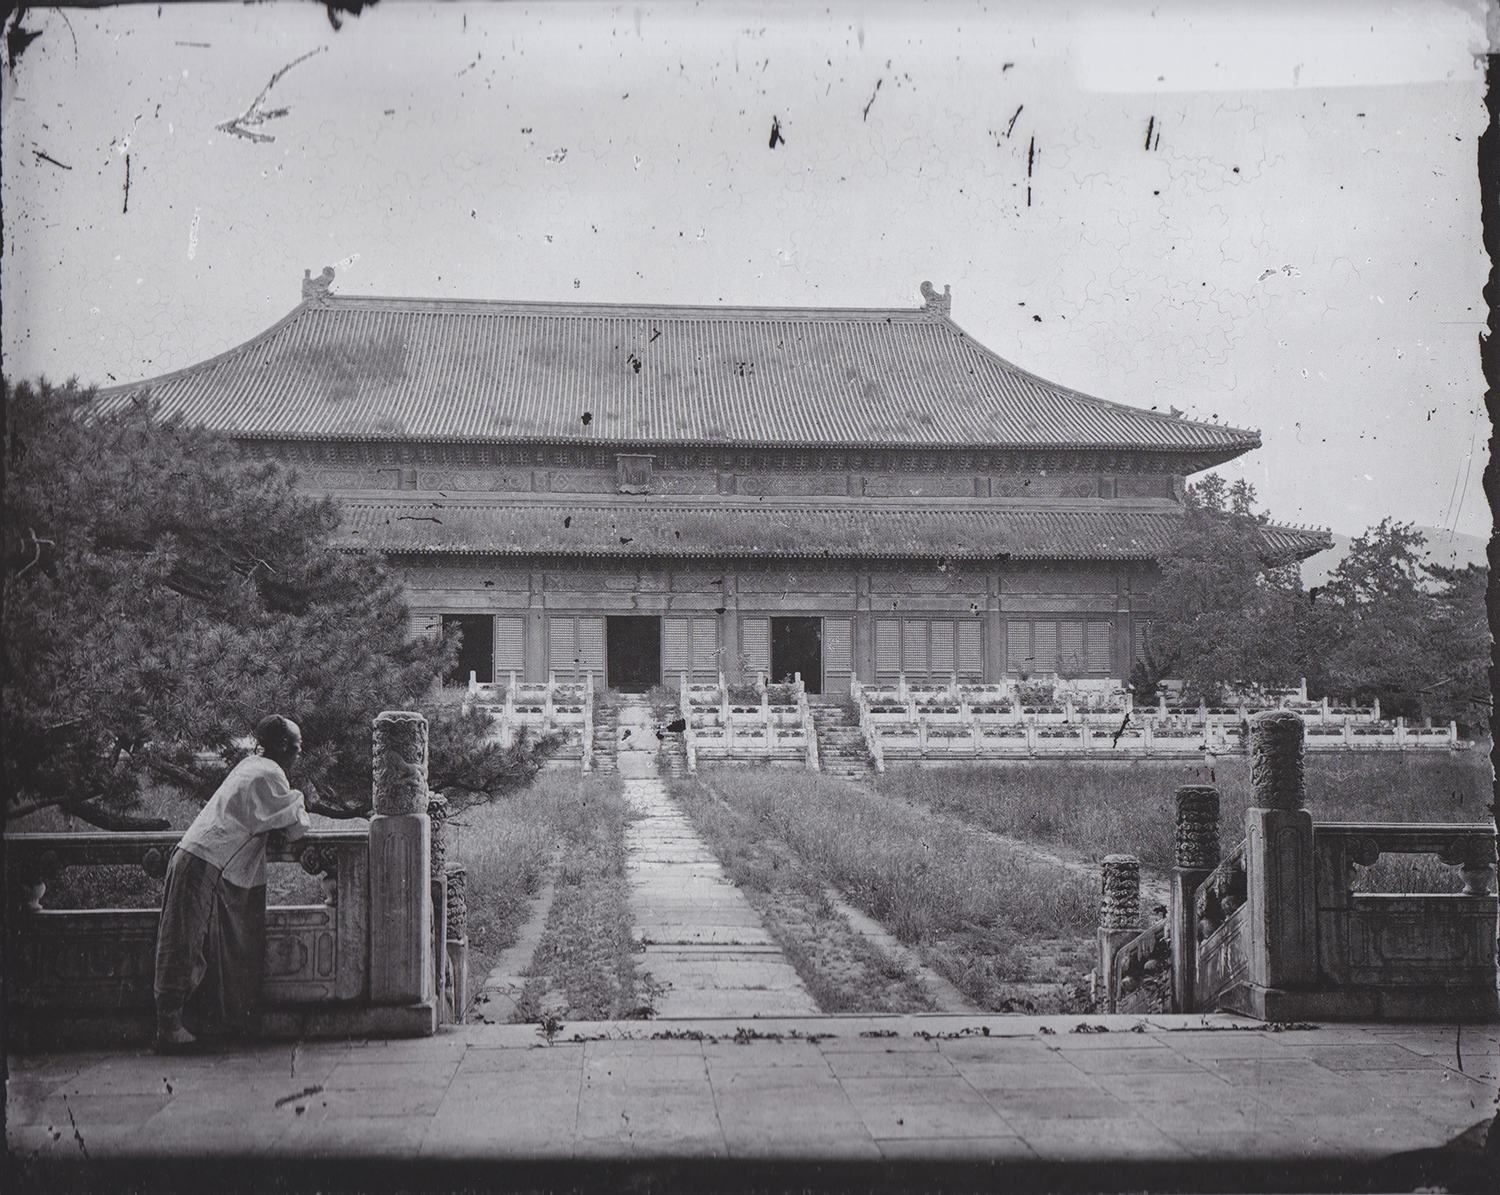 John Thomson, The Great Sacrifice Hall, Changling, Ming Tombs, Beijing, 1871-72 © Wellcome Library/Wellcome Images